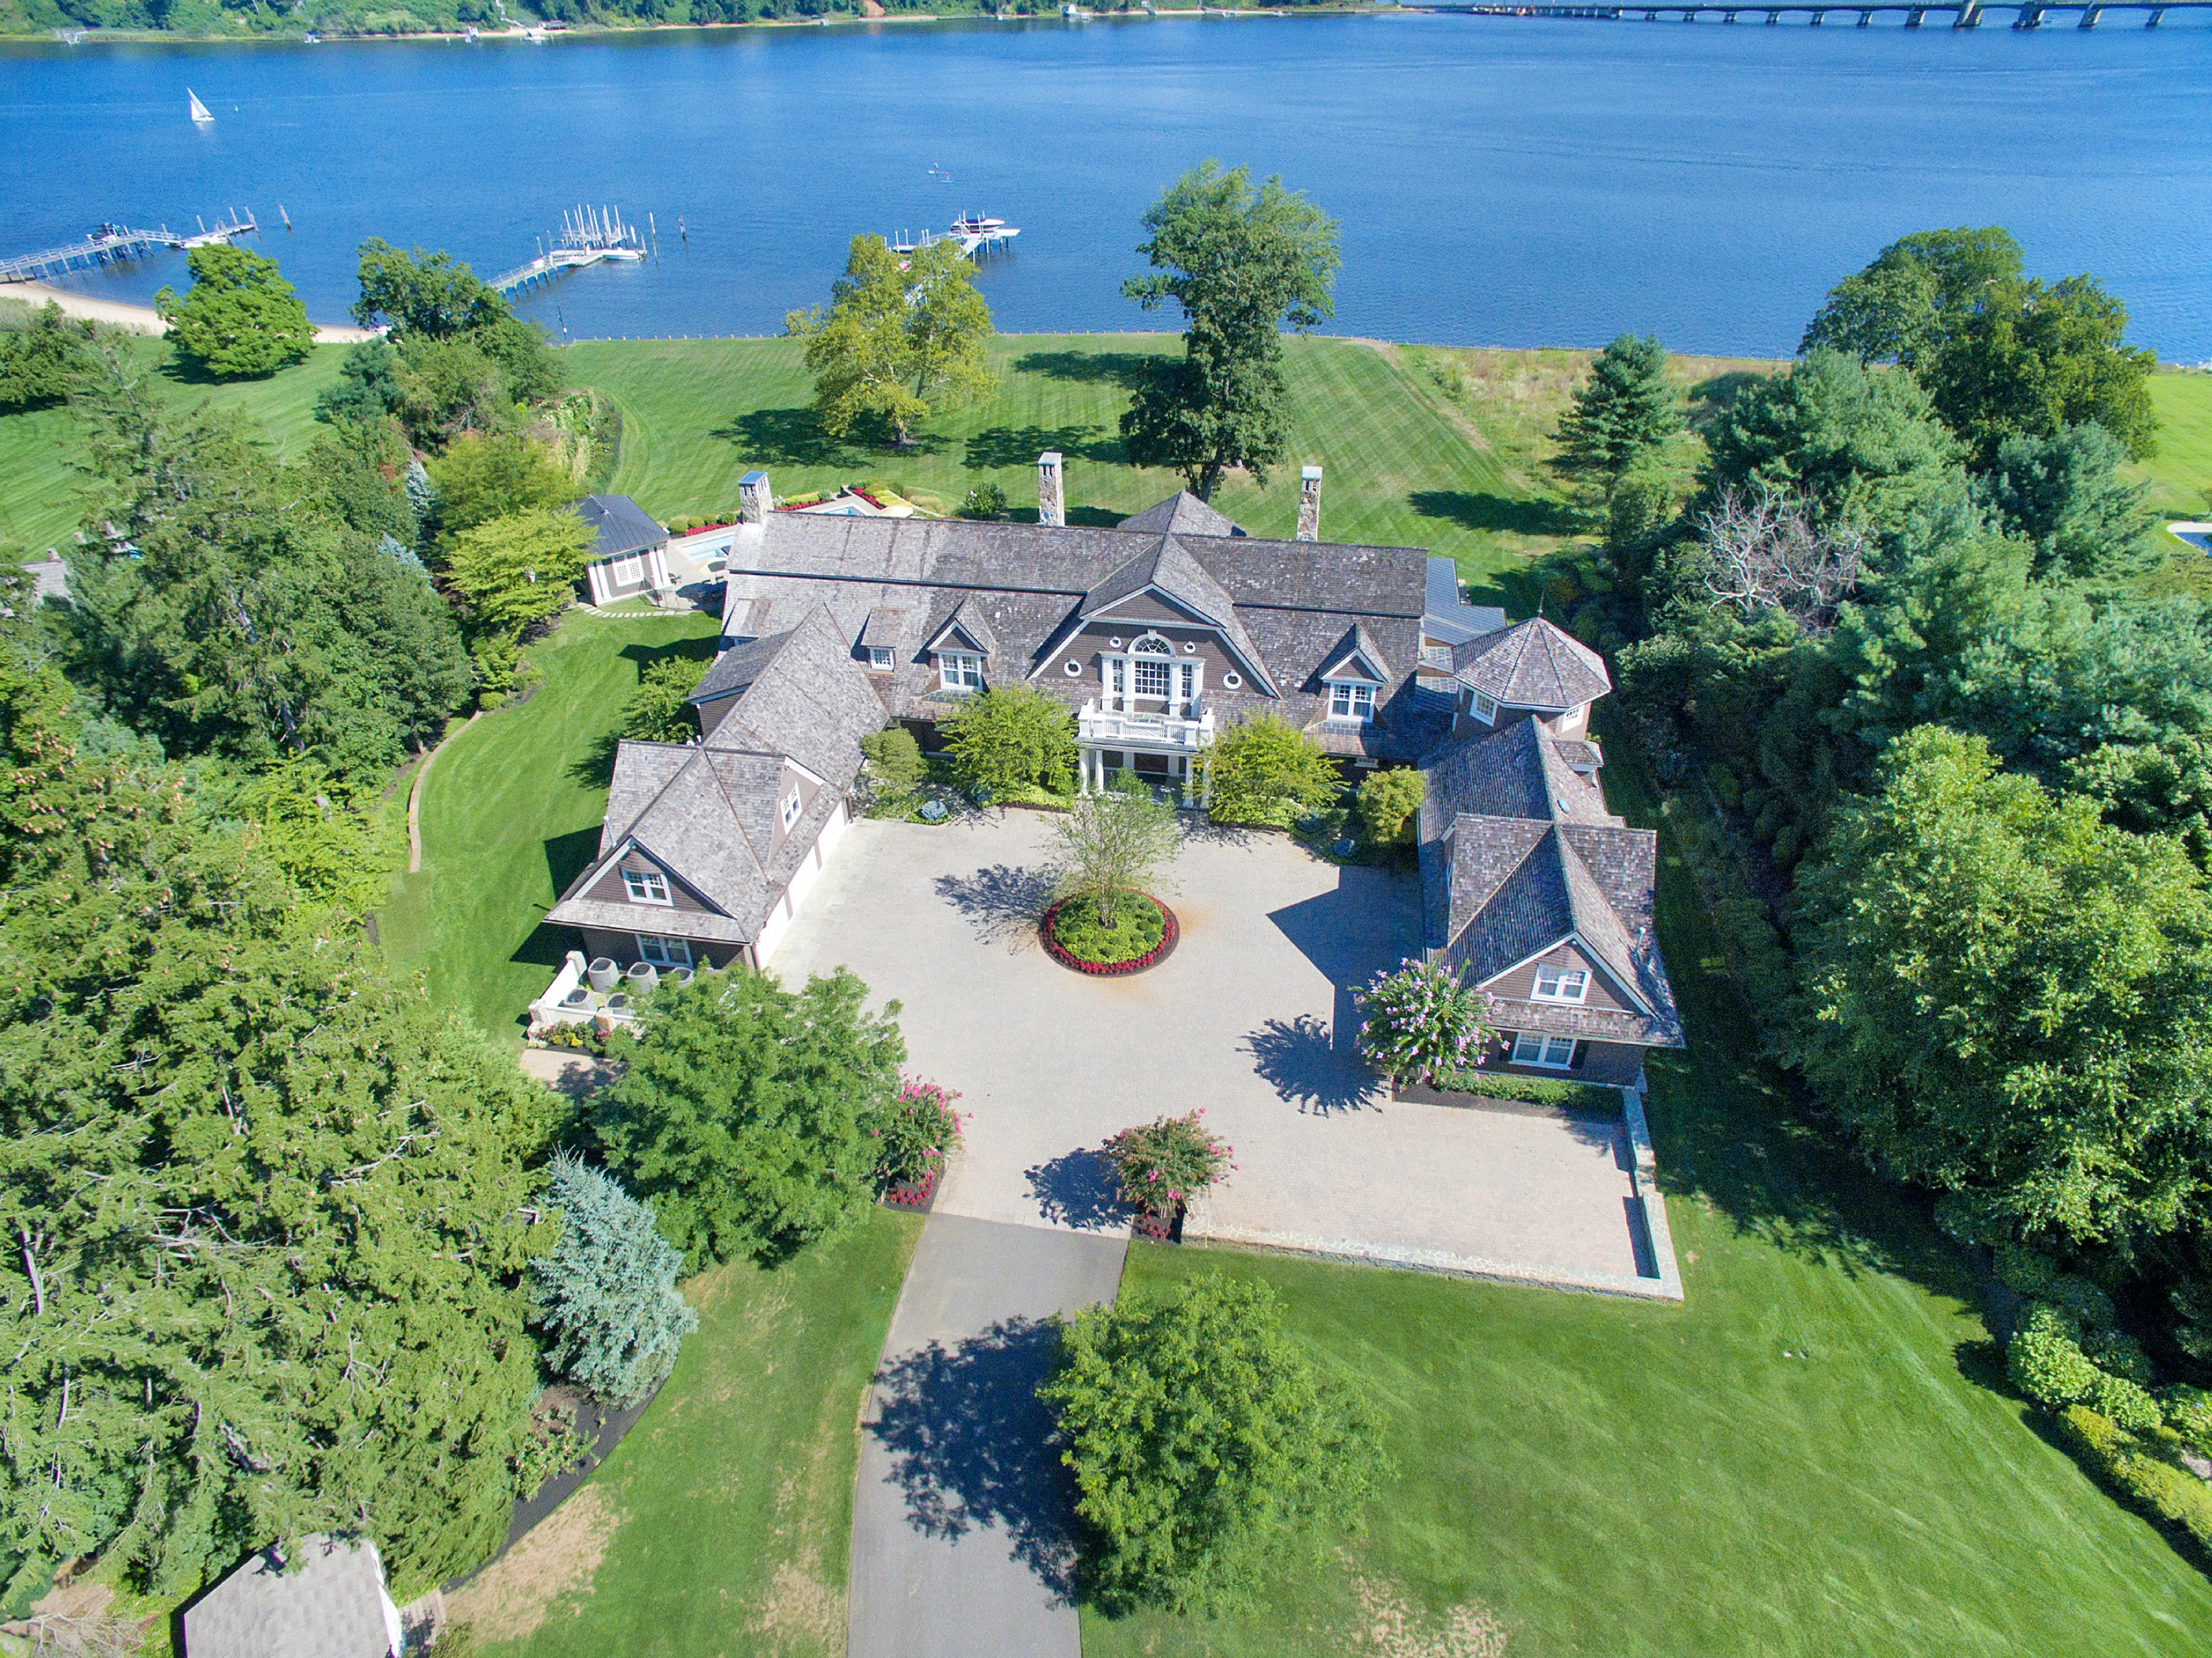 """Single Family Home for Sale at """"Riverblades"""" 74 West River Road Rumson, New Jersey 07760 United States"""